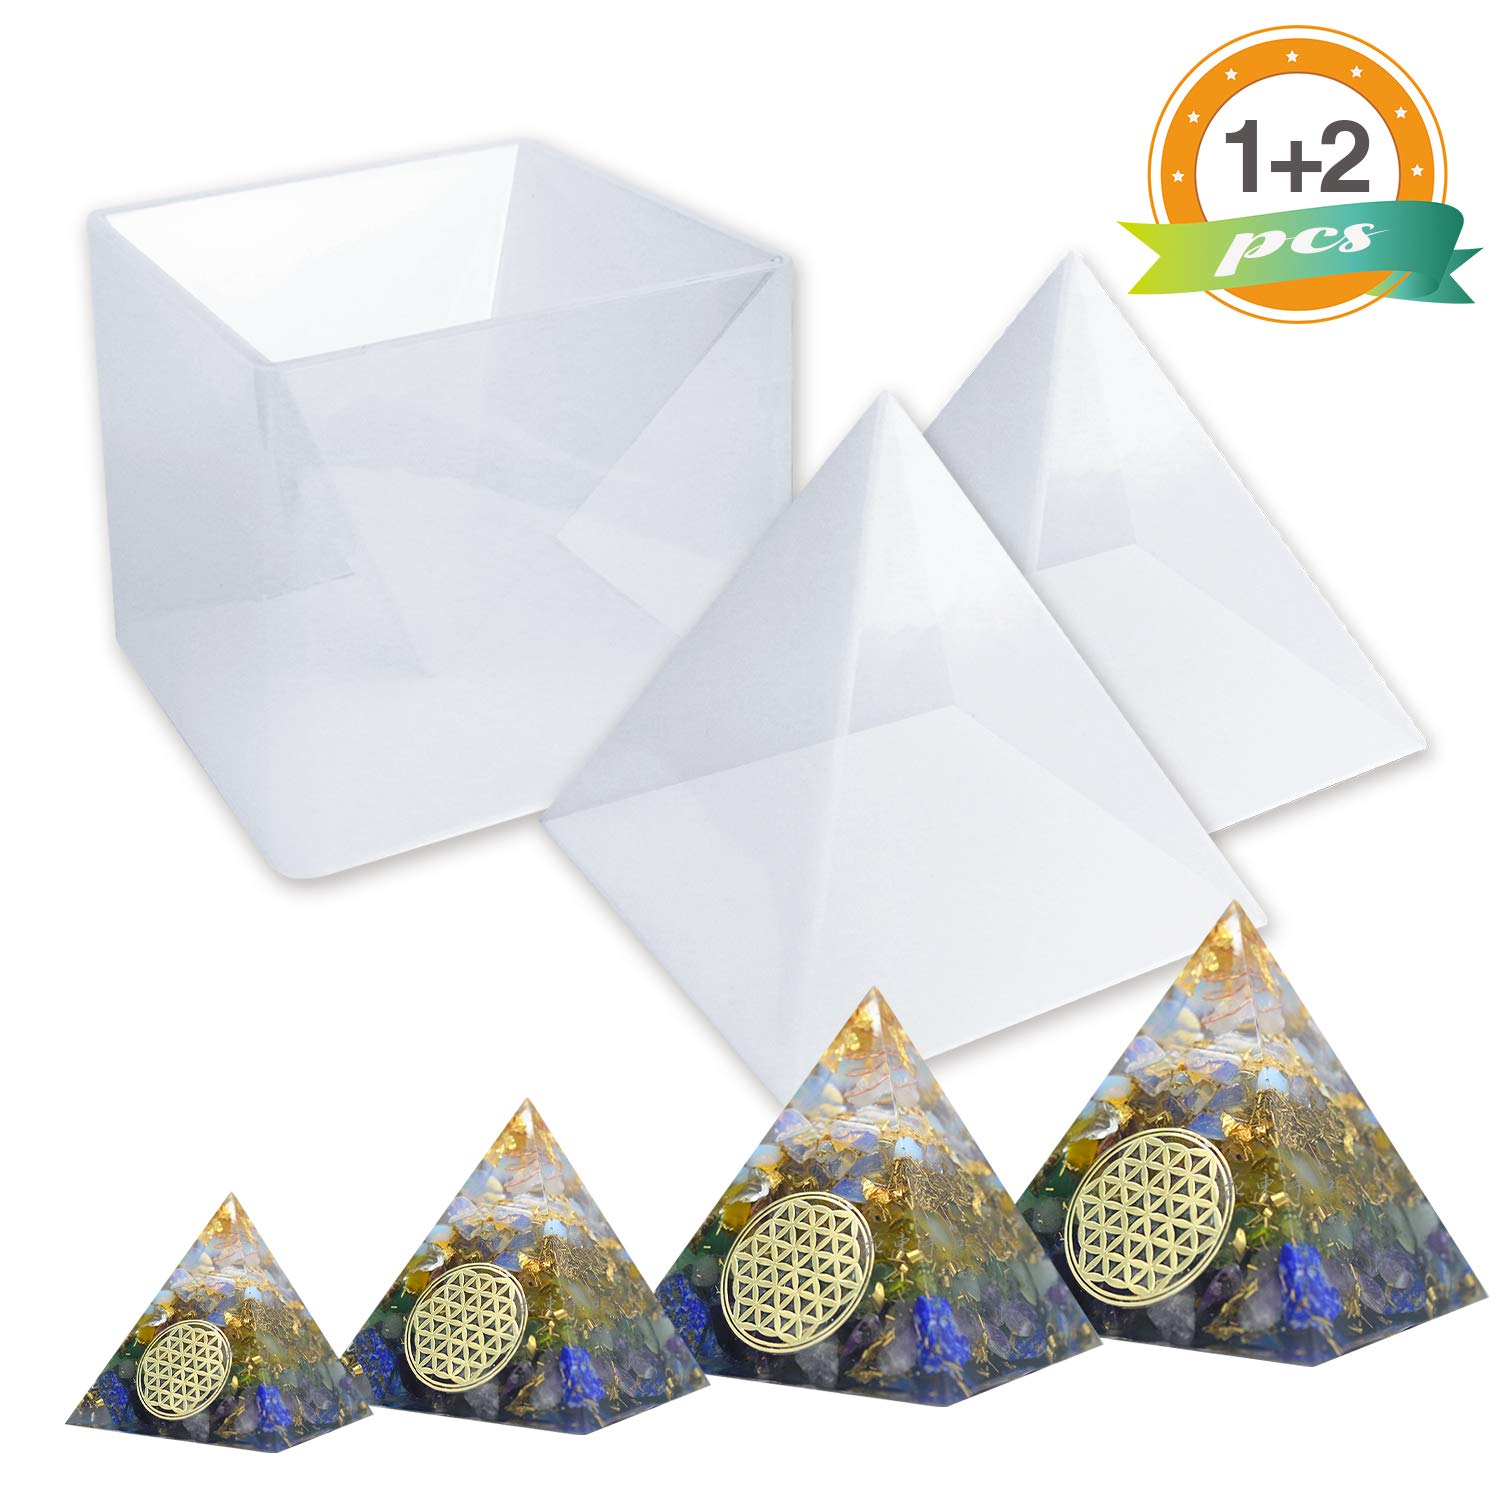 Large Resin Molds LETS RESIN Epoxy Resin Molds Large Pen Holder Silicone Molds 2Pcs Hexagon and Square Silicone Molds for Resin Coaster//Flower Pot//Pen Holder//Candle Holder etc